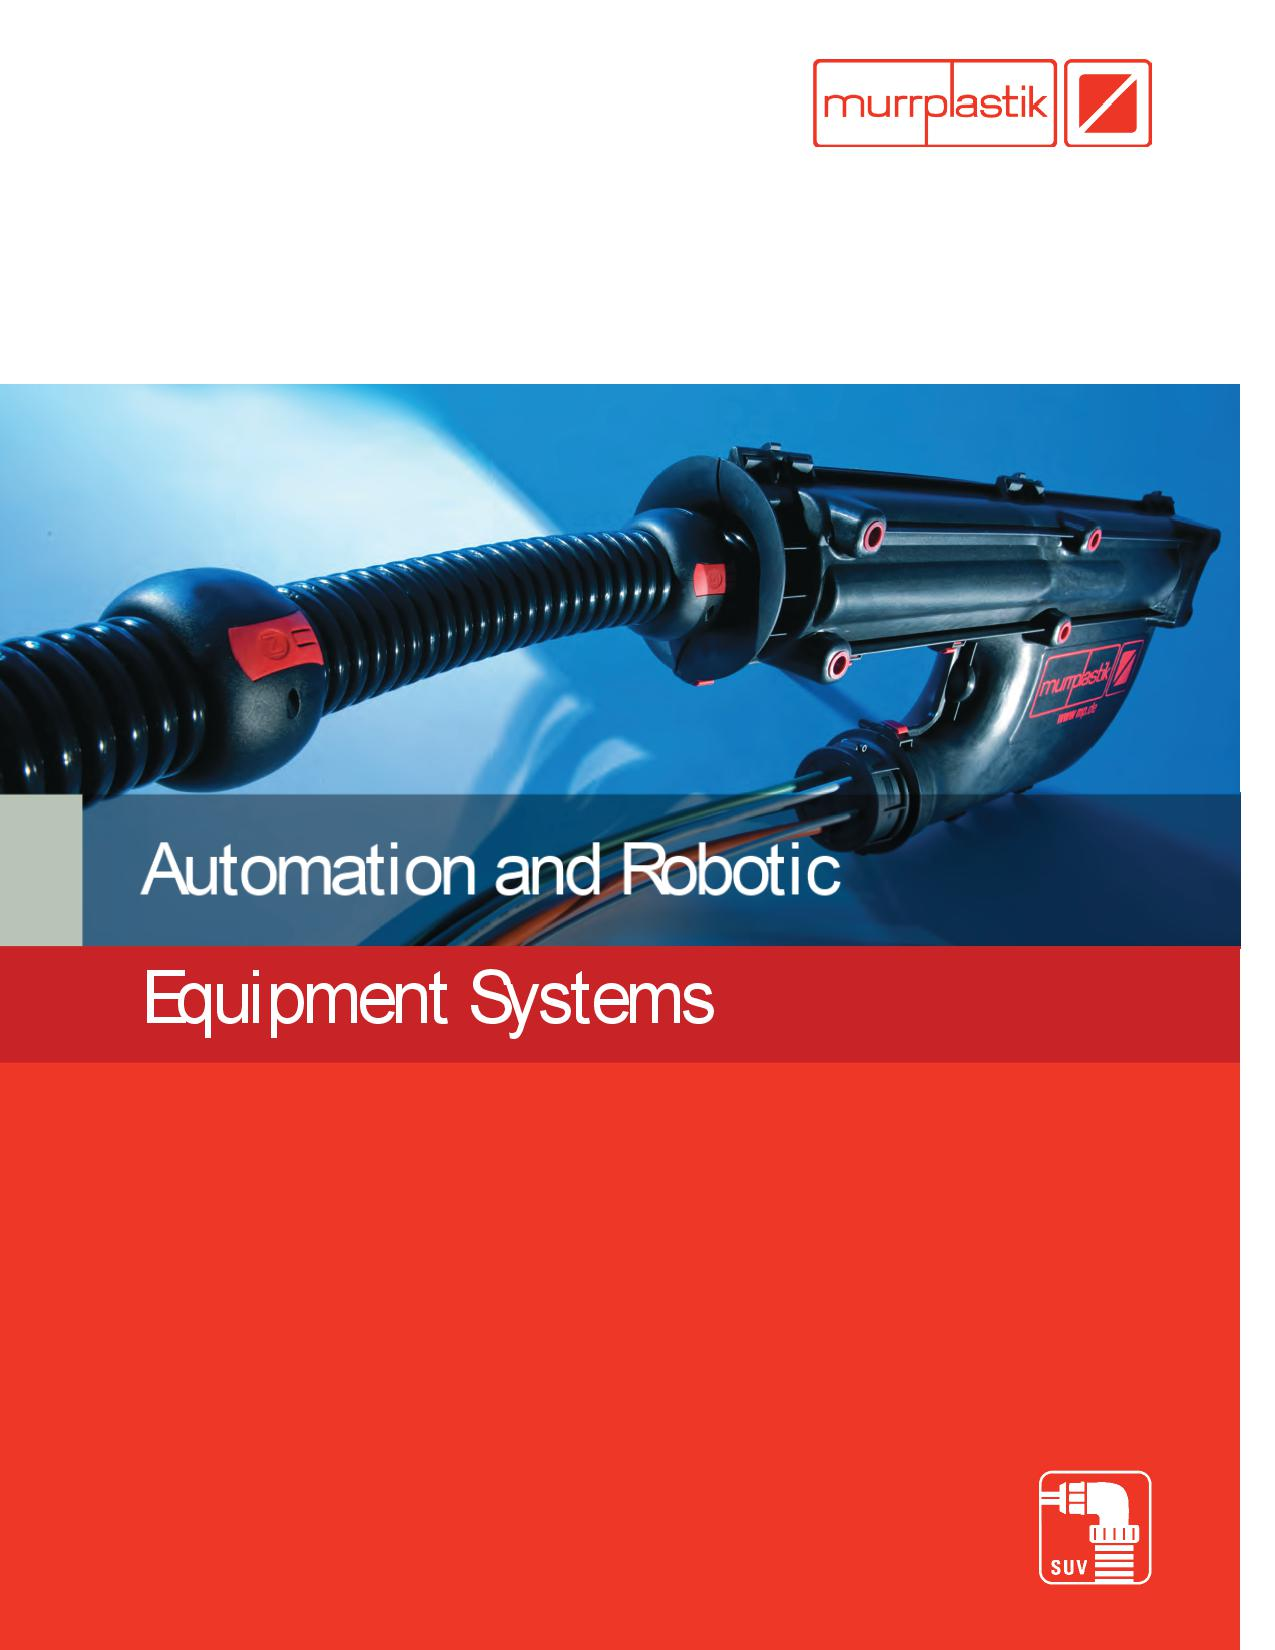 Automation and Robotic Equipment Systems